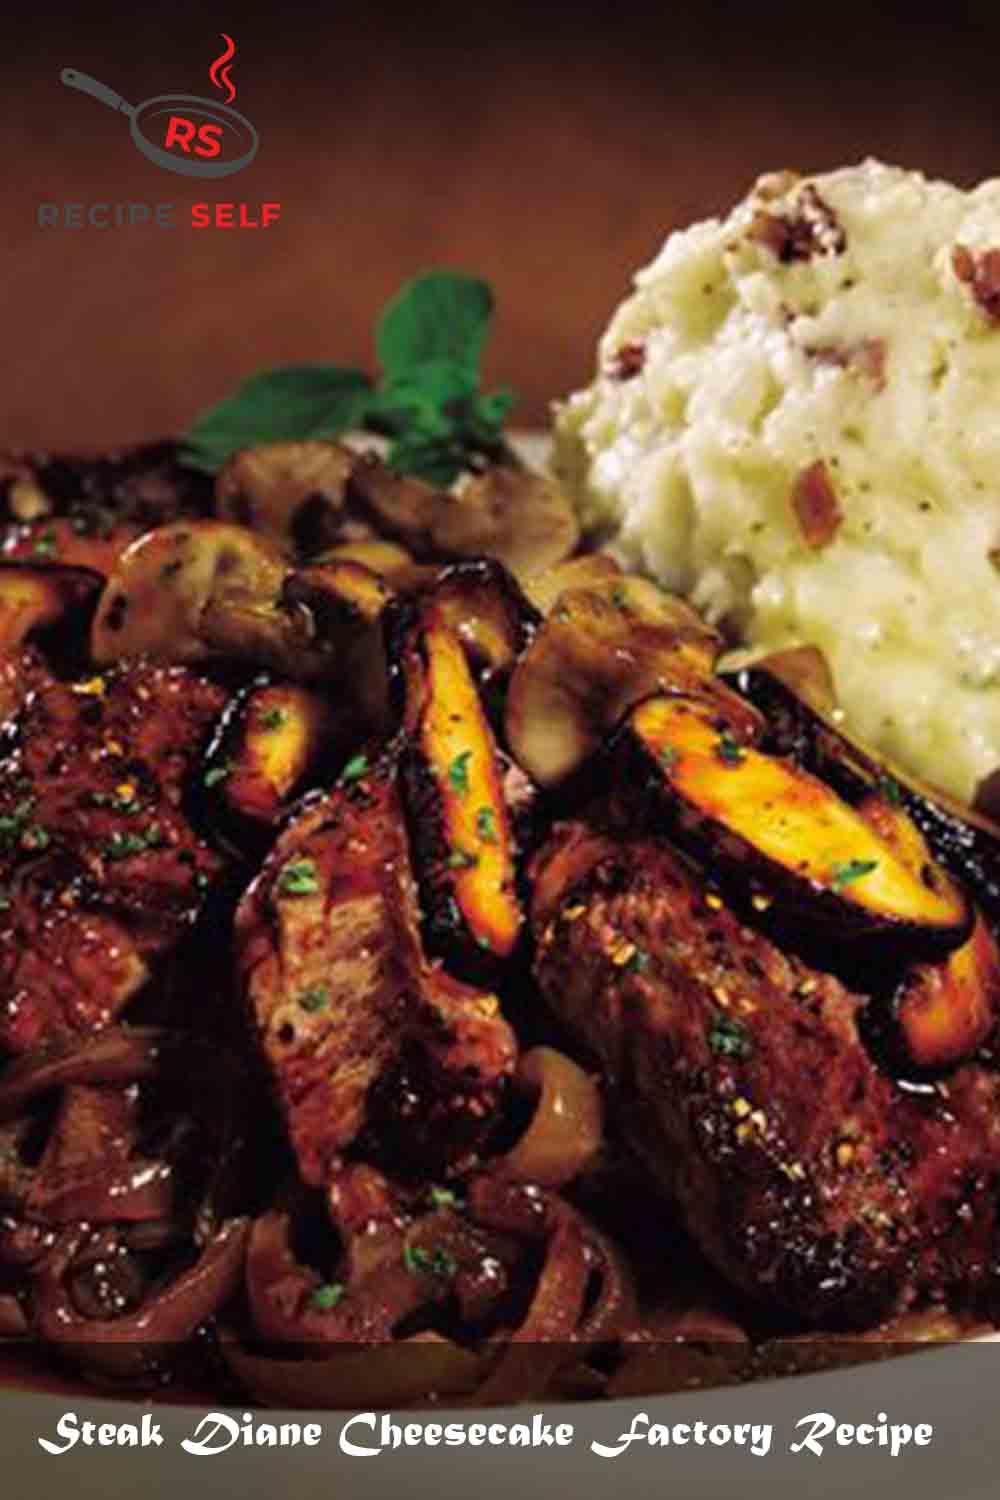 Steak Diane Cheesecake Factory Recipe